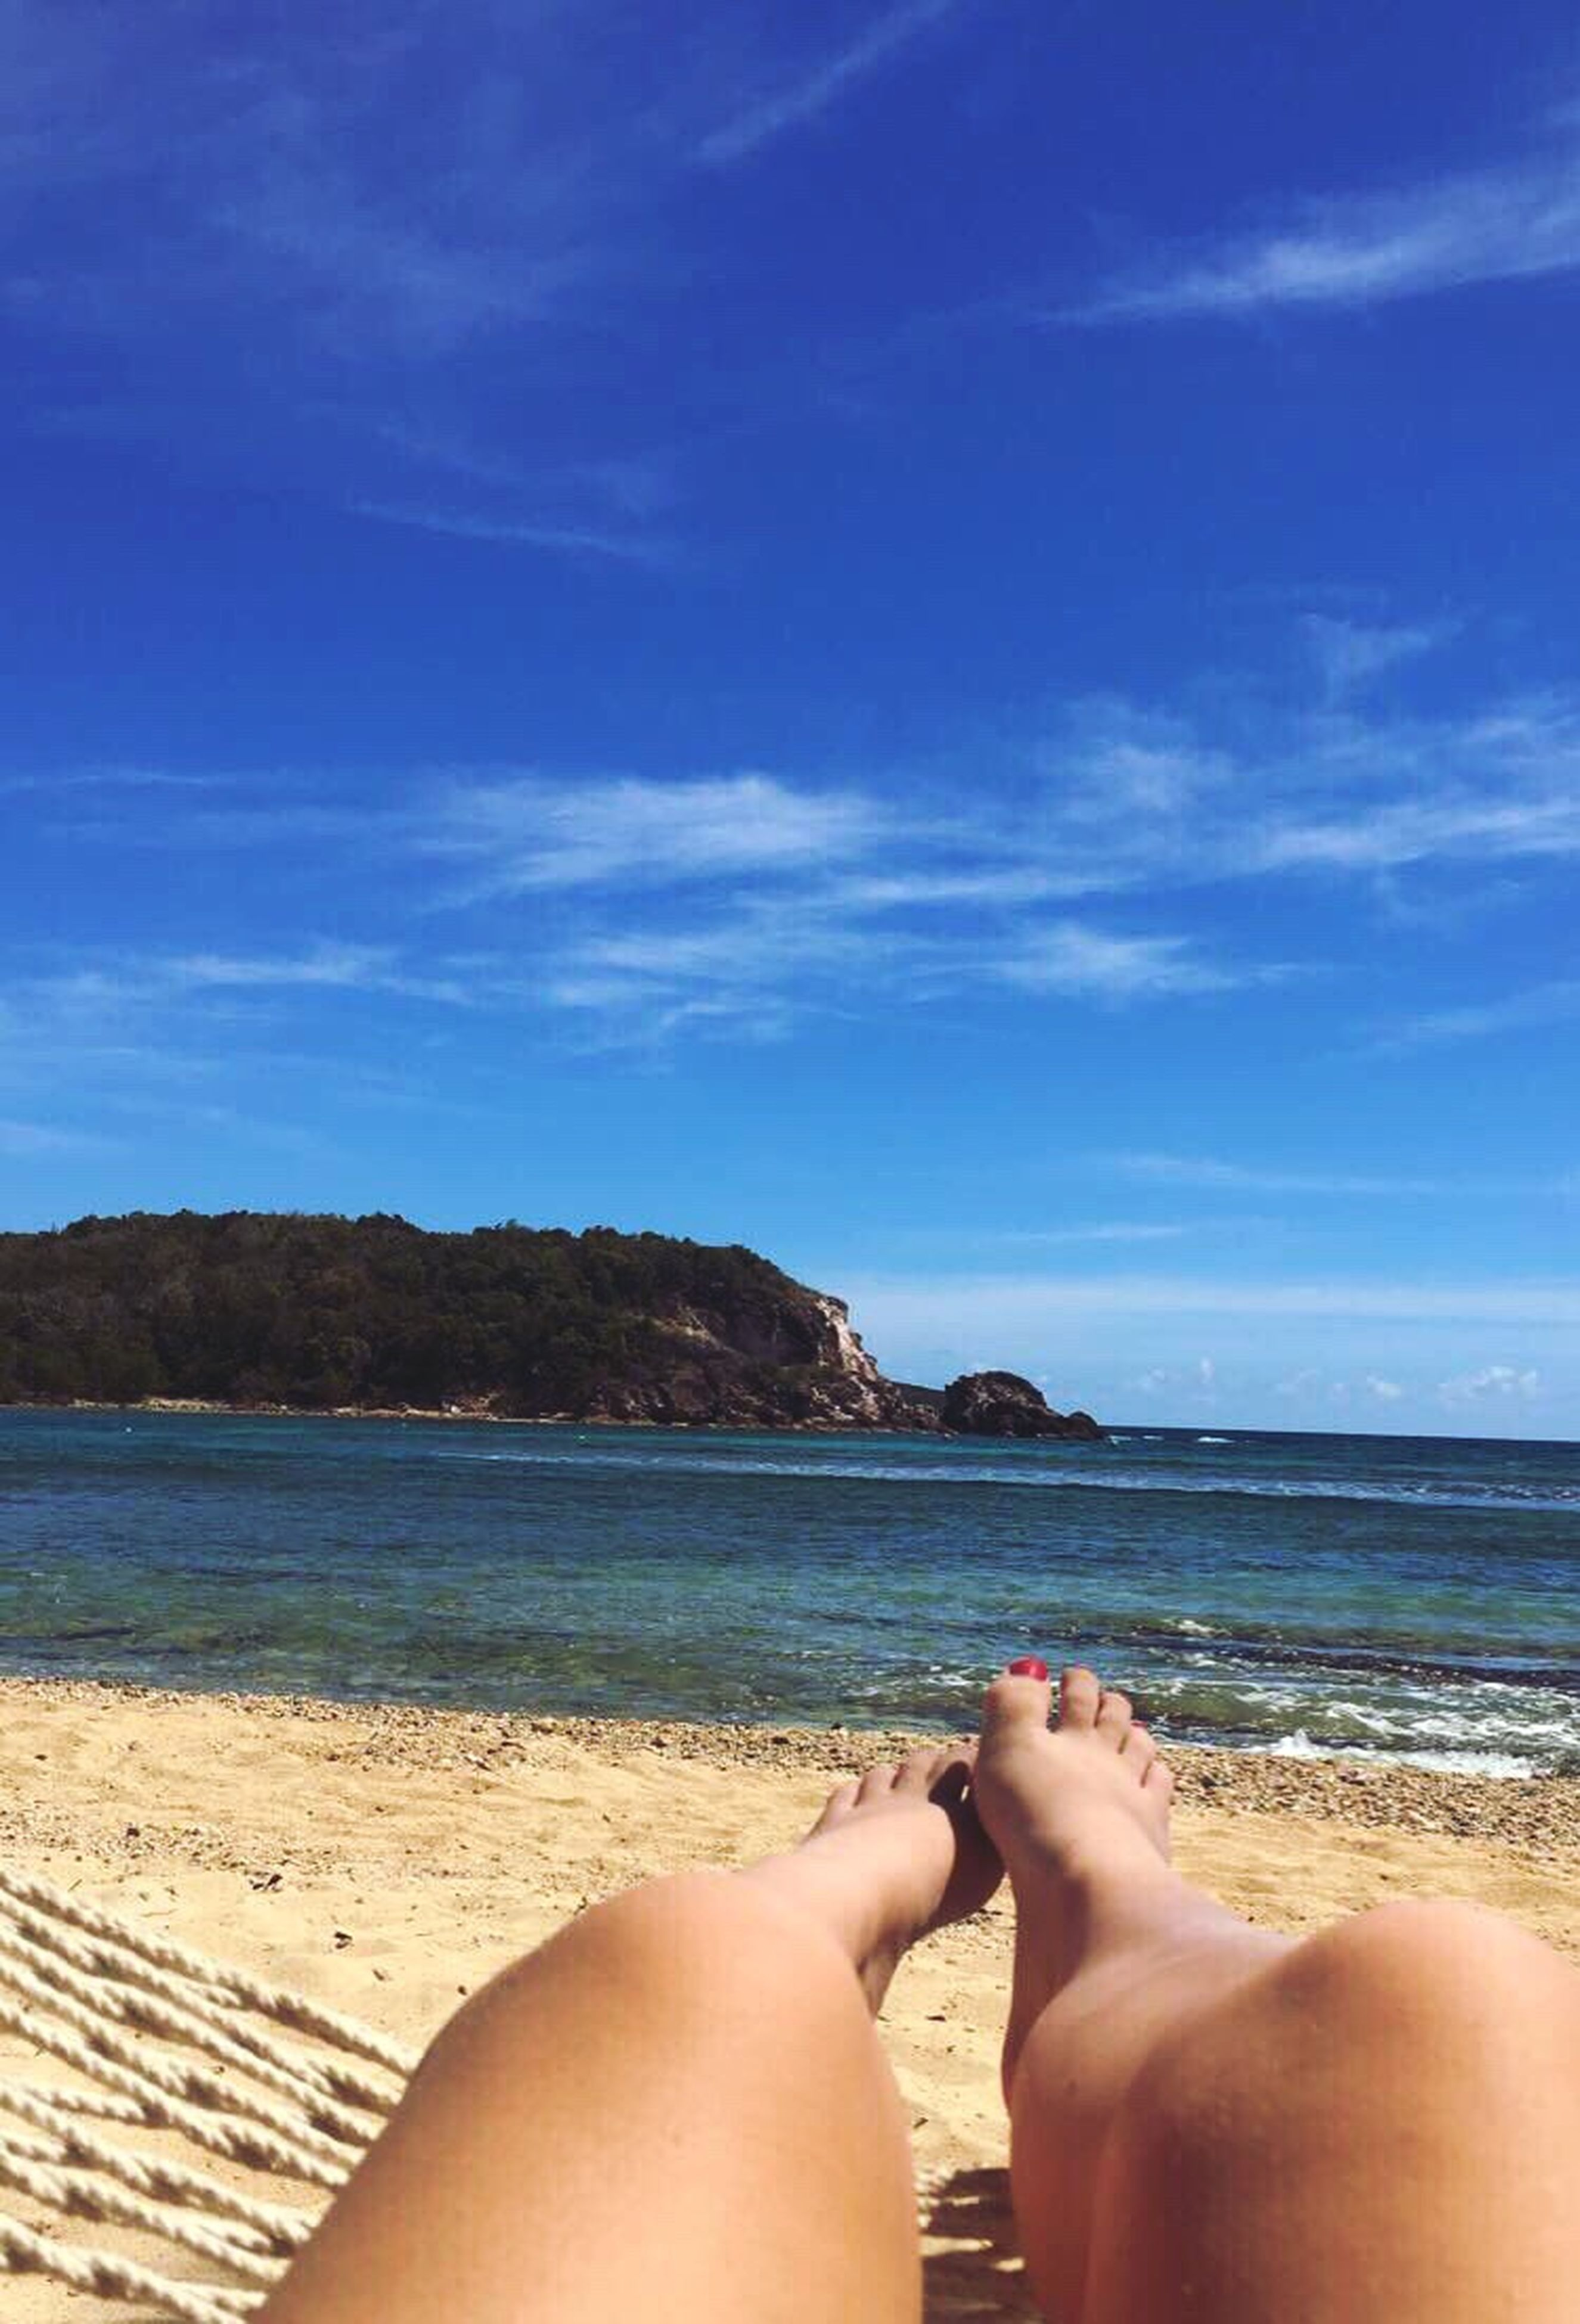 beach, low section, human leg, sea, one person, sand, sky, barefoot, water, personal perspective, human body part, real people, day, nature, cloud - sky, outdoors, leisure activity, blue, scenics, lifestyles, beauty in nature, relaxation, horizon over water, close-up, human hand, adult, people